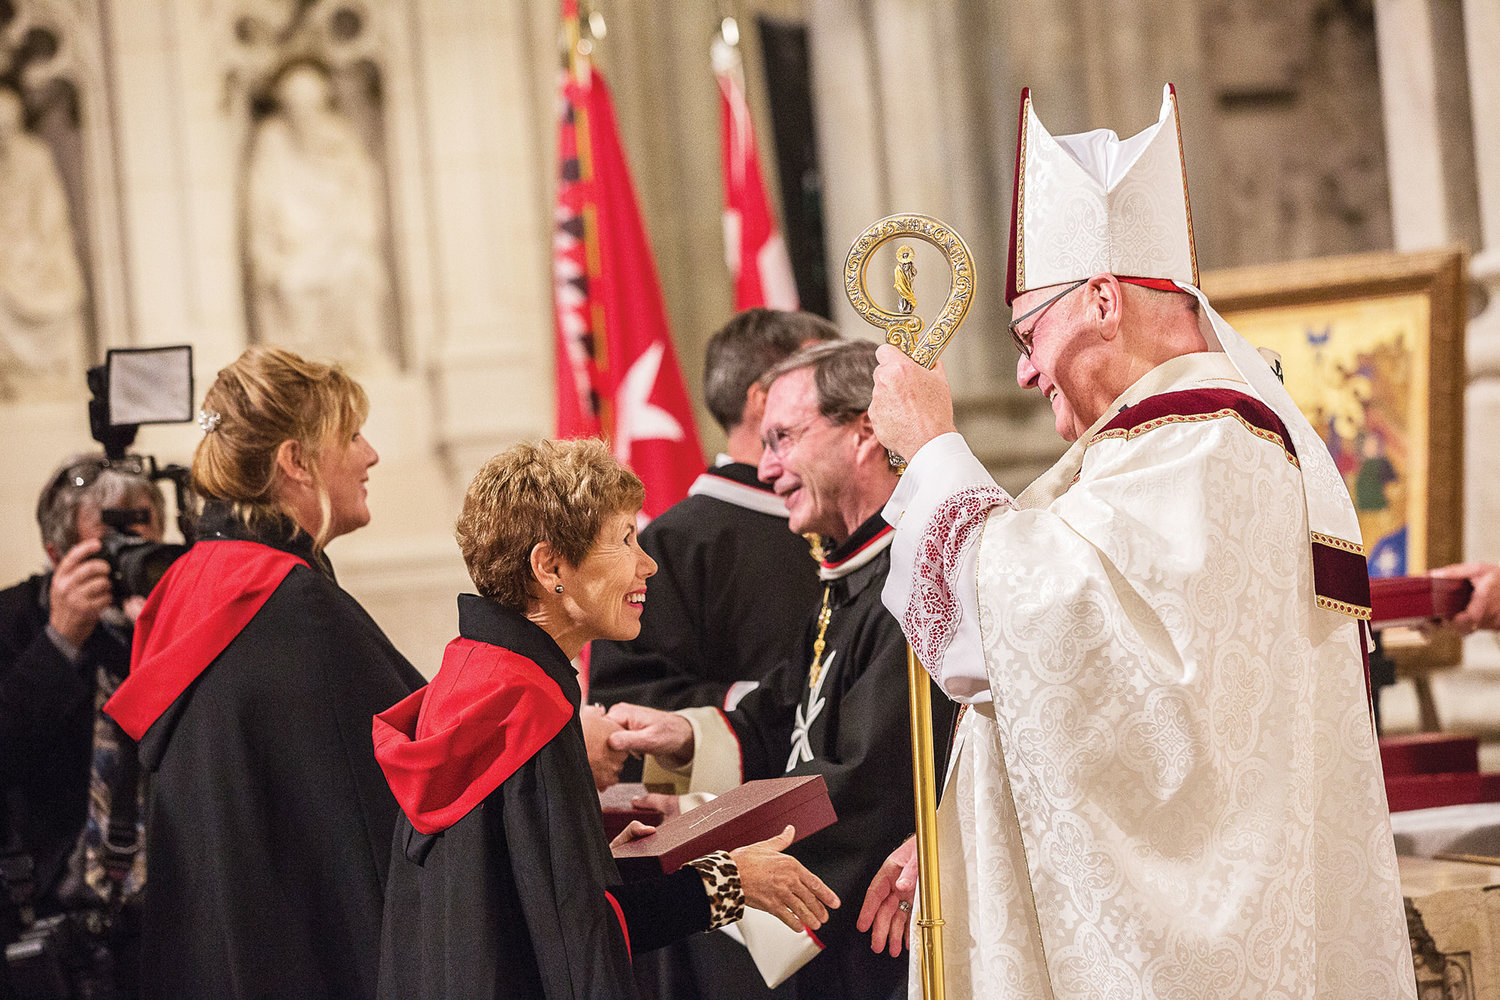 Cardinal Dolan, above right, who served as principal celebrant and homilist, congratulates a new dame after she received her encased Cross of the Order.